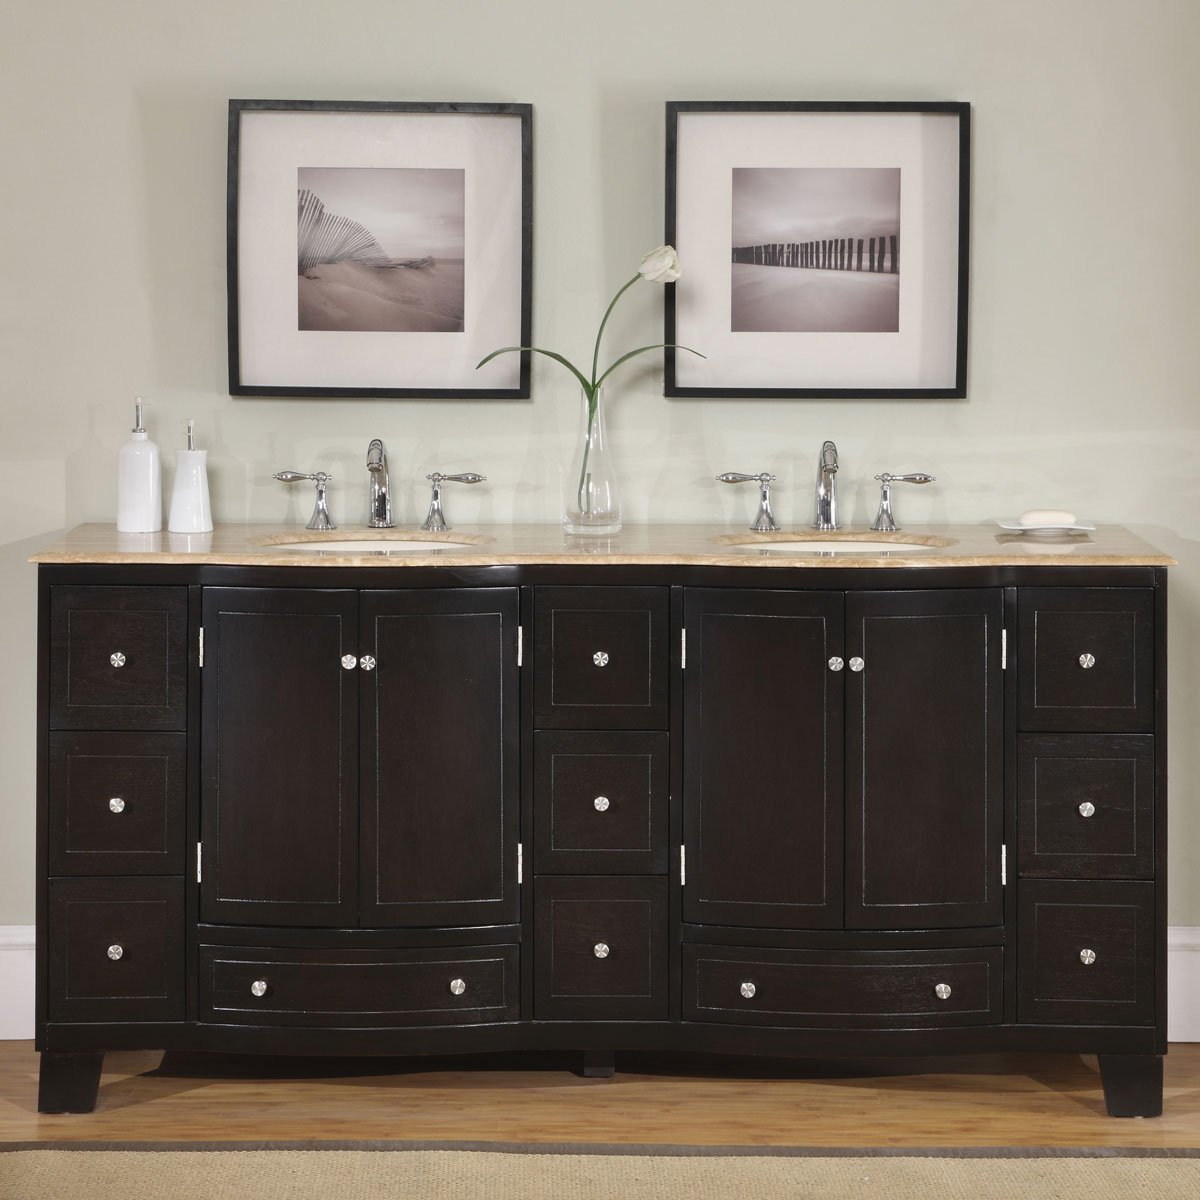 Silkroad Exclusive Countertop Travertine Stone Double Sink Bathroom Vanity with Dual Cabinet, 72 , Dark Wood